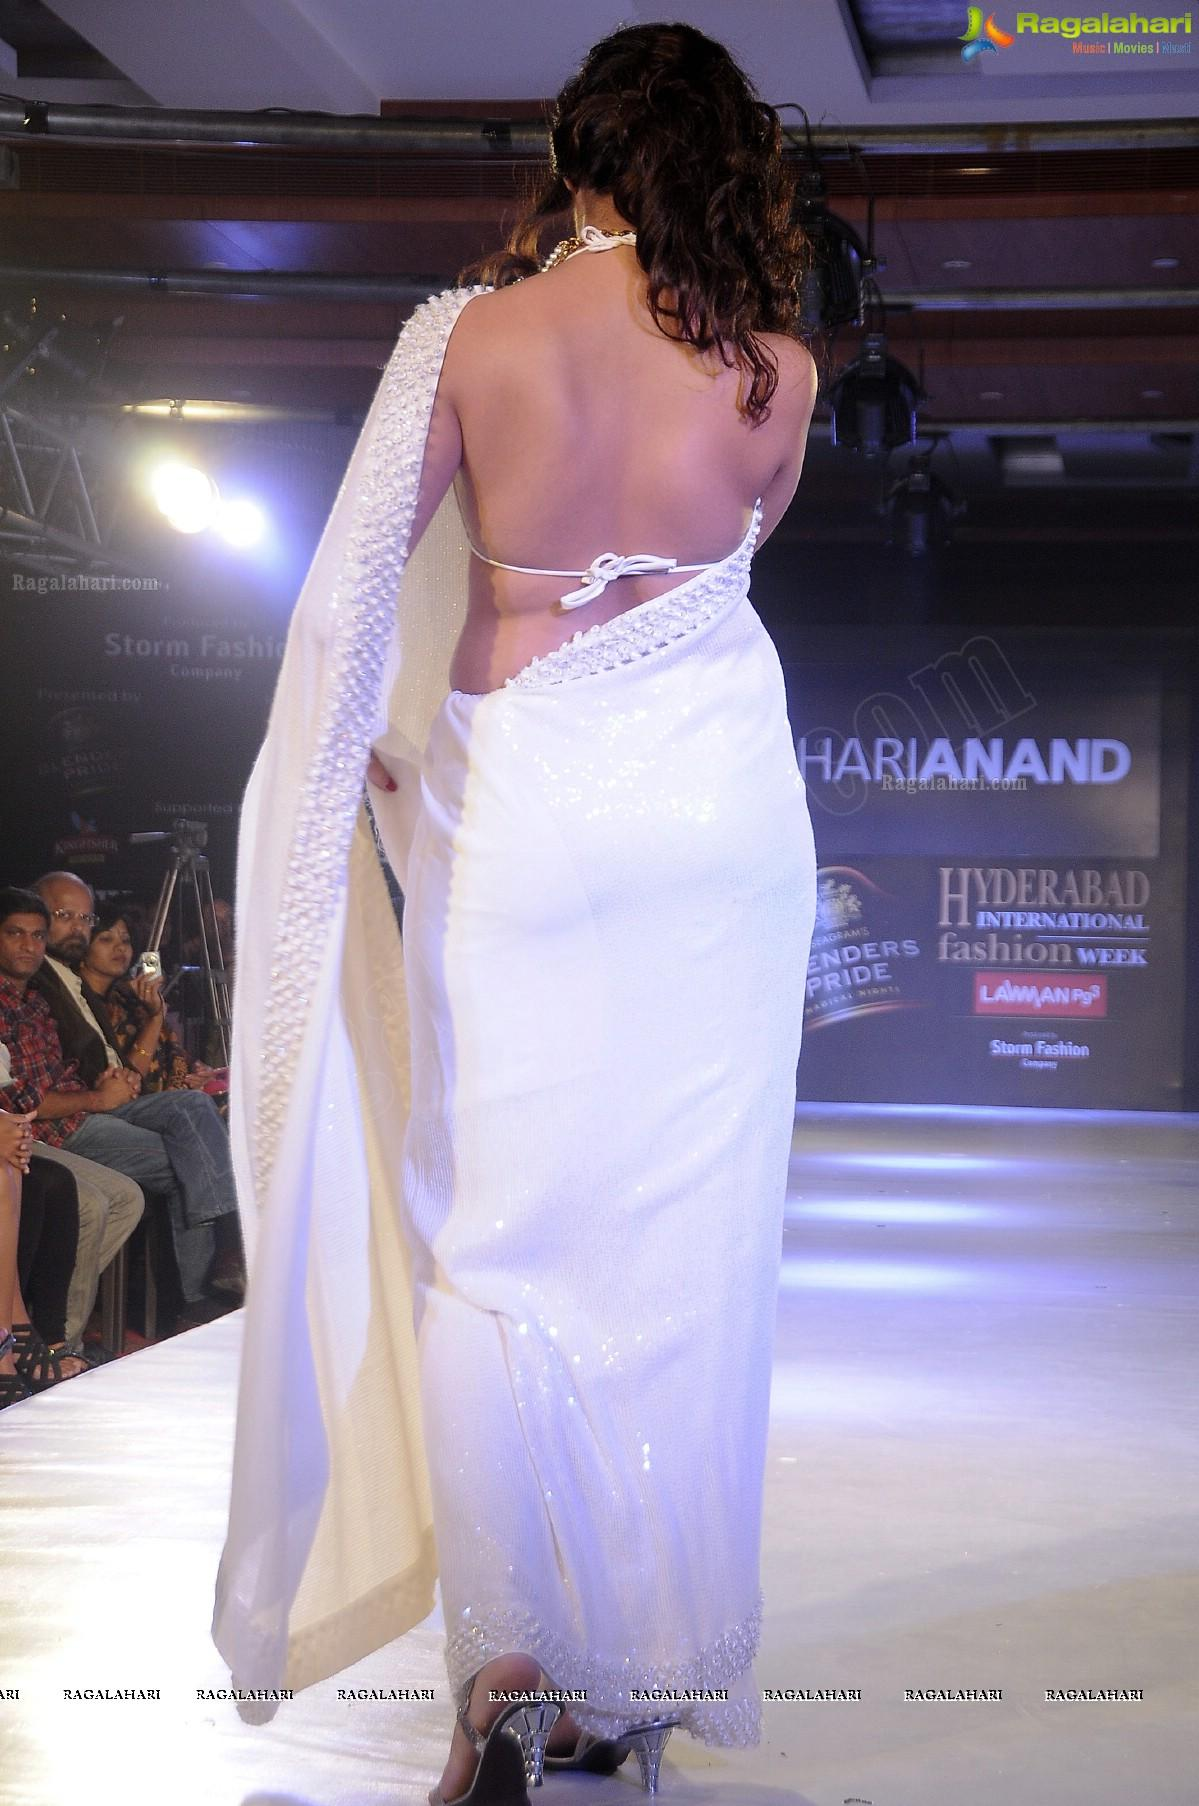 Hamsa Nandini Walks the Ramp in Transparent White Saree at HIFW 2011 (Day 3) - High Resolution Photos - Image 12